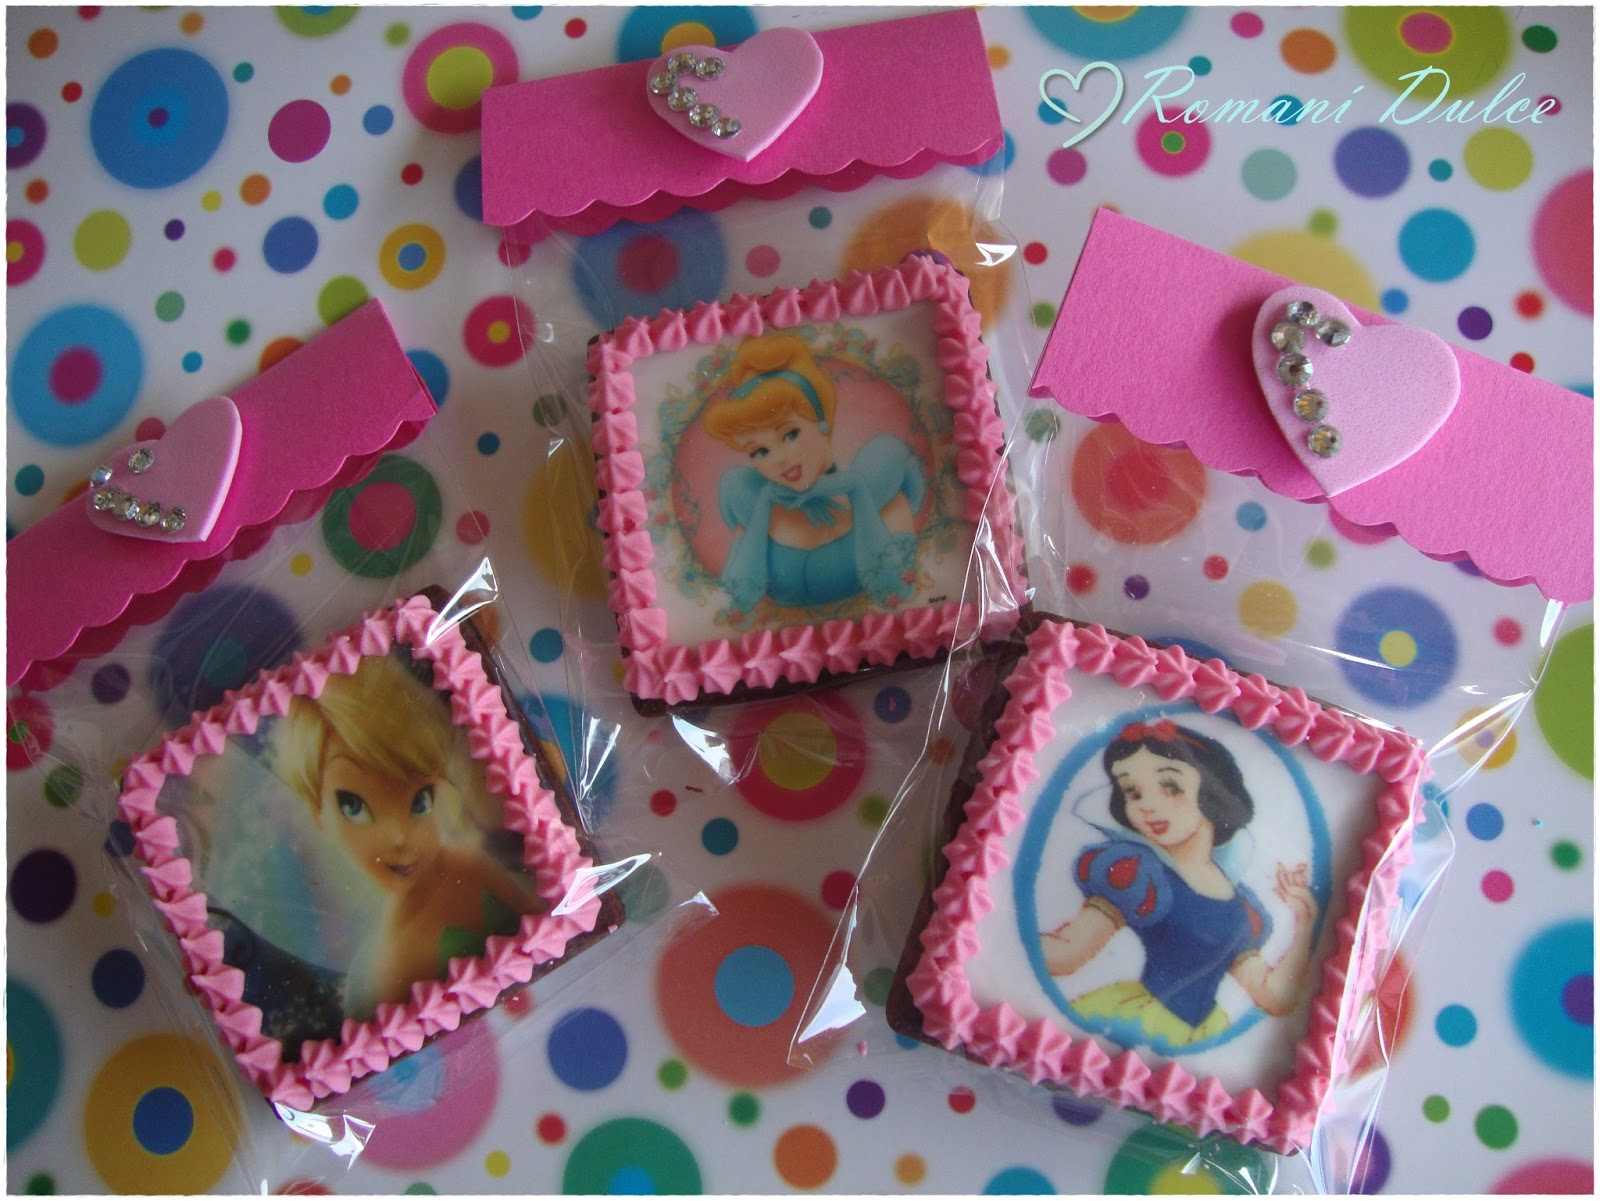 Galletas Decoradas De Princesas Romaní Obrador Pastissería Galletas Decoradas Quotprincesas